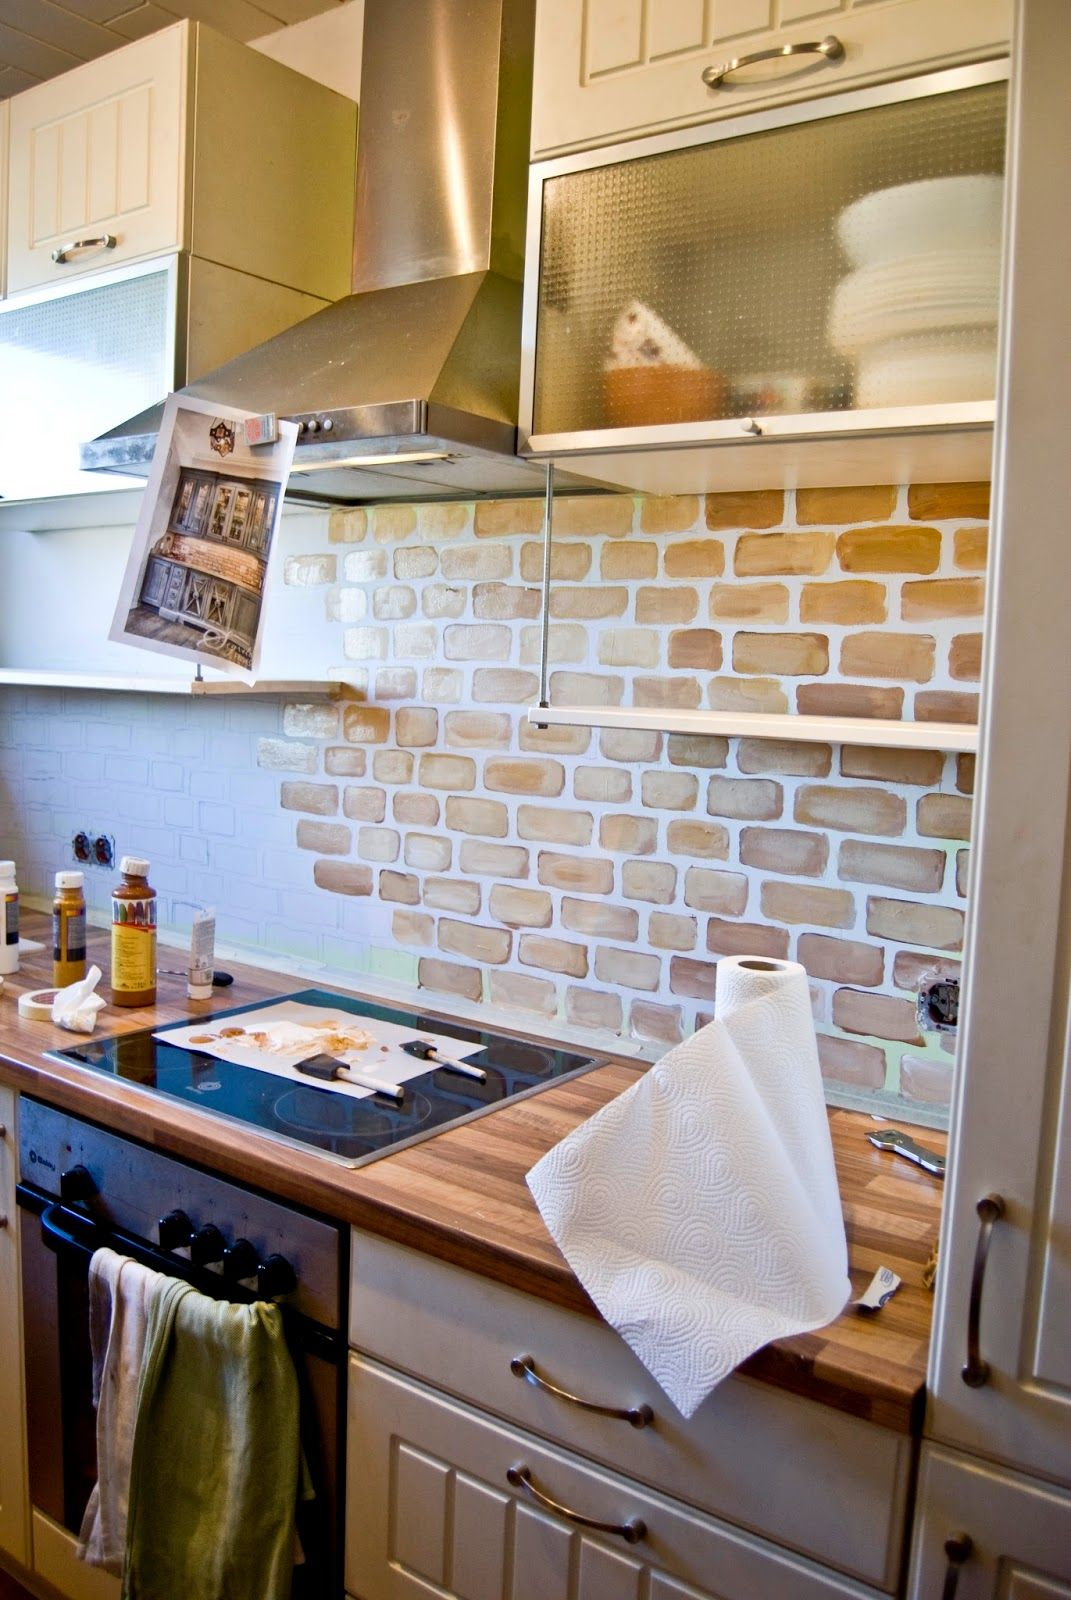 Superieur Amusing Brick Kitchen Backsplash Patterns With Tissue: 15 Cool Brick  Kitchen Backsplash Ideas